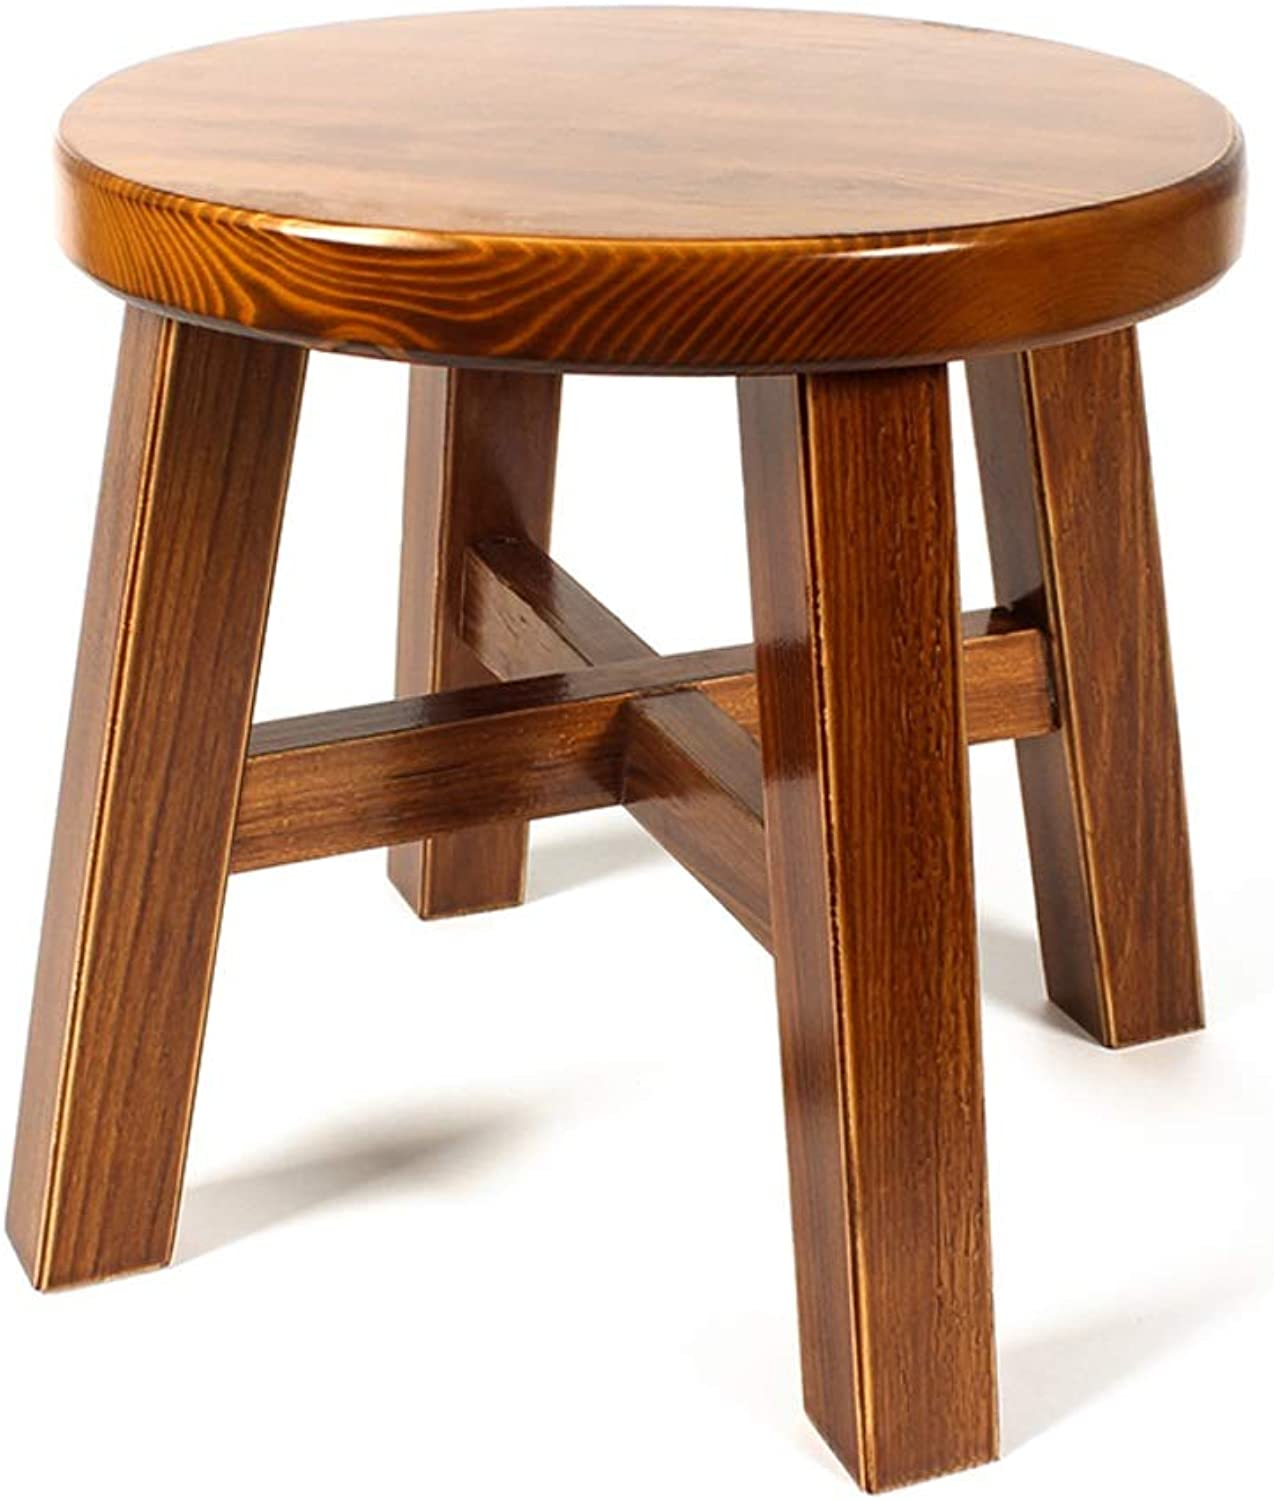 Solid Wood Vintage Footstool Creative Home Living Room Seat Stool Round 4 Legs Wooden shoes Stool V (color   A)